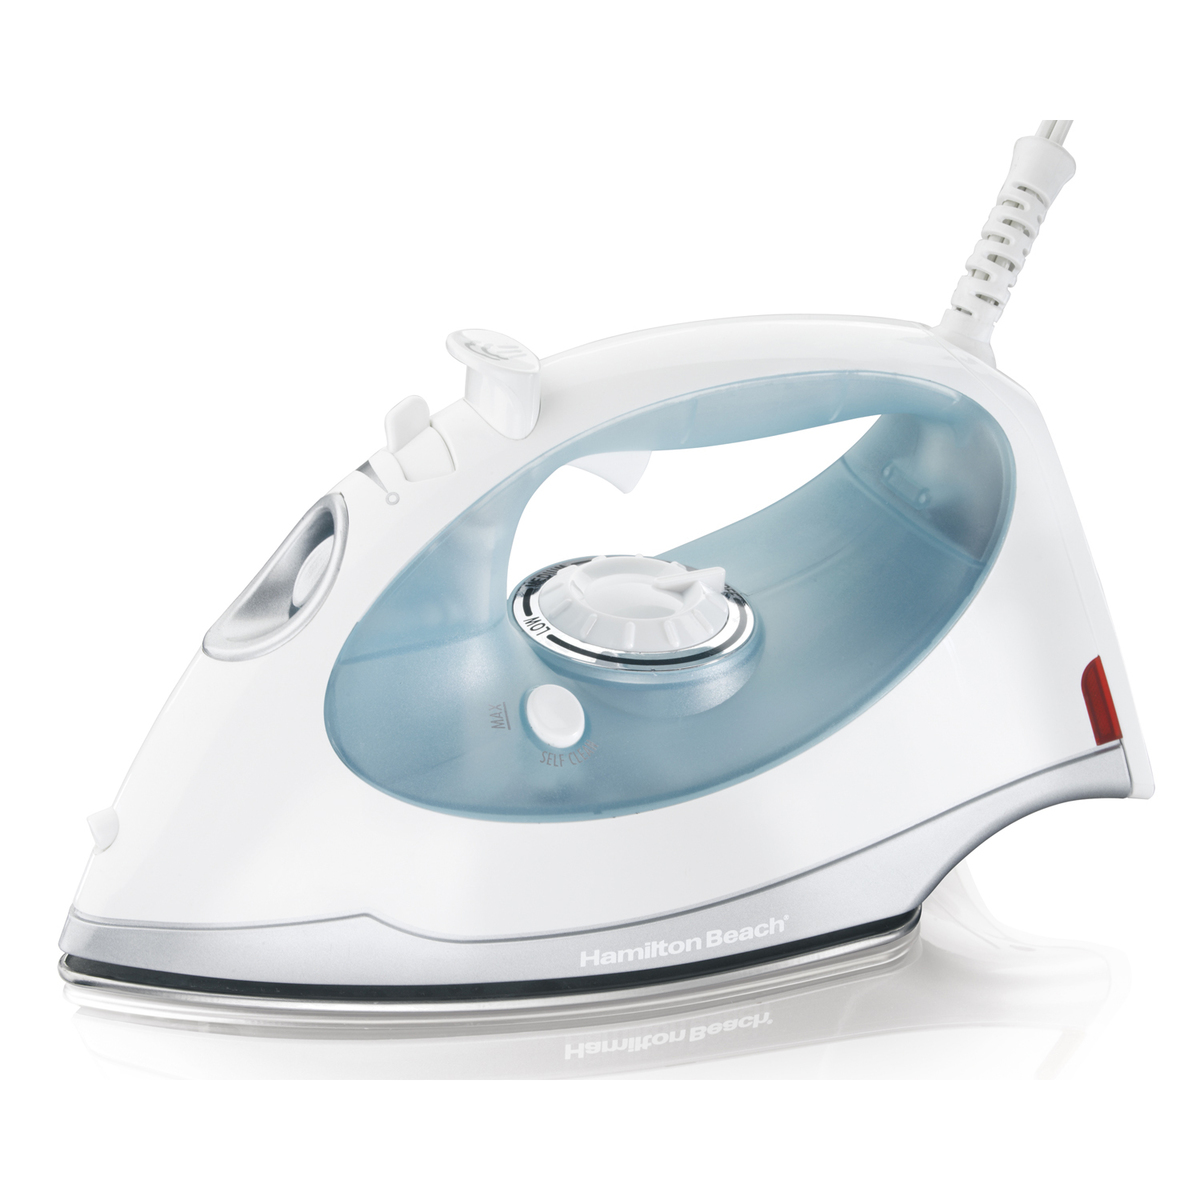 Steam Elite™ Stainless Steel Iron (14010)